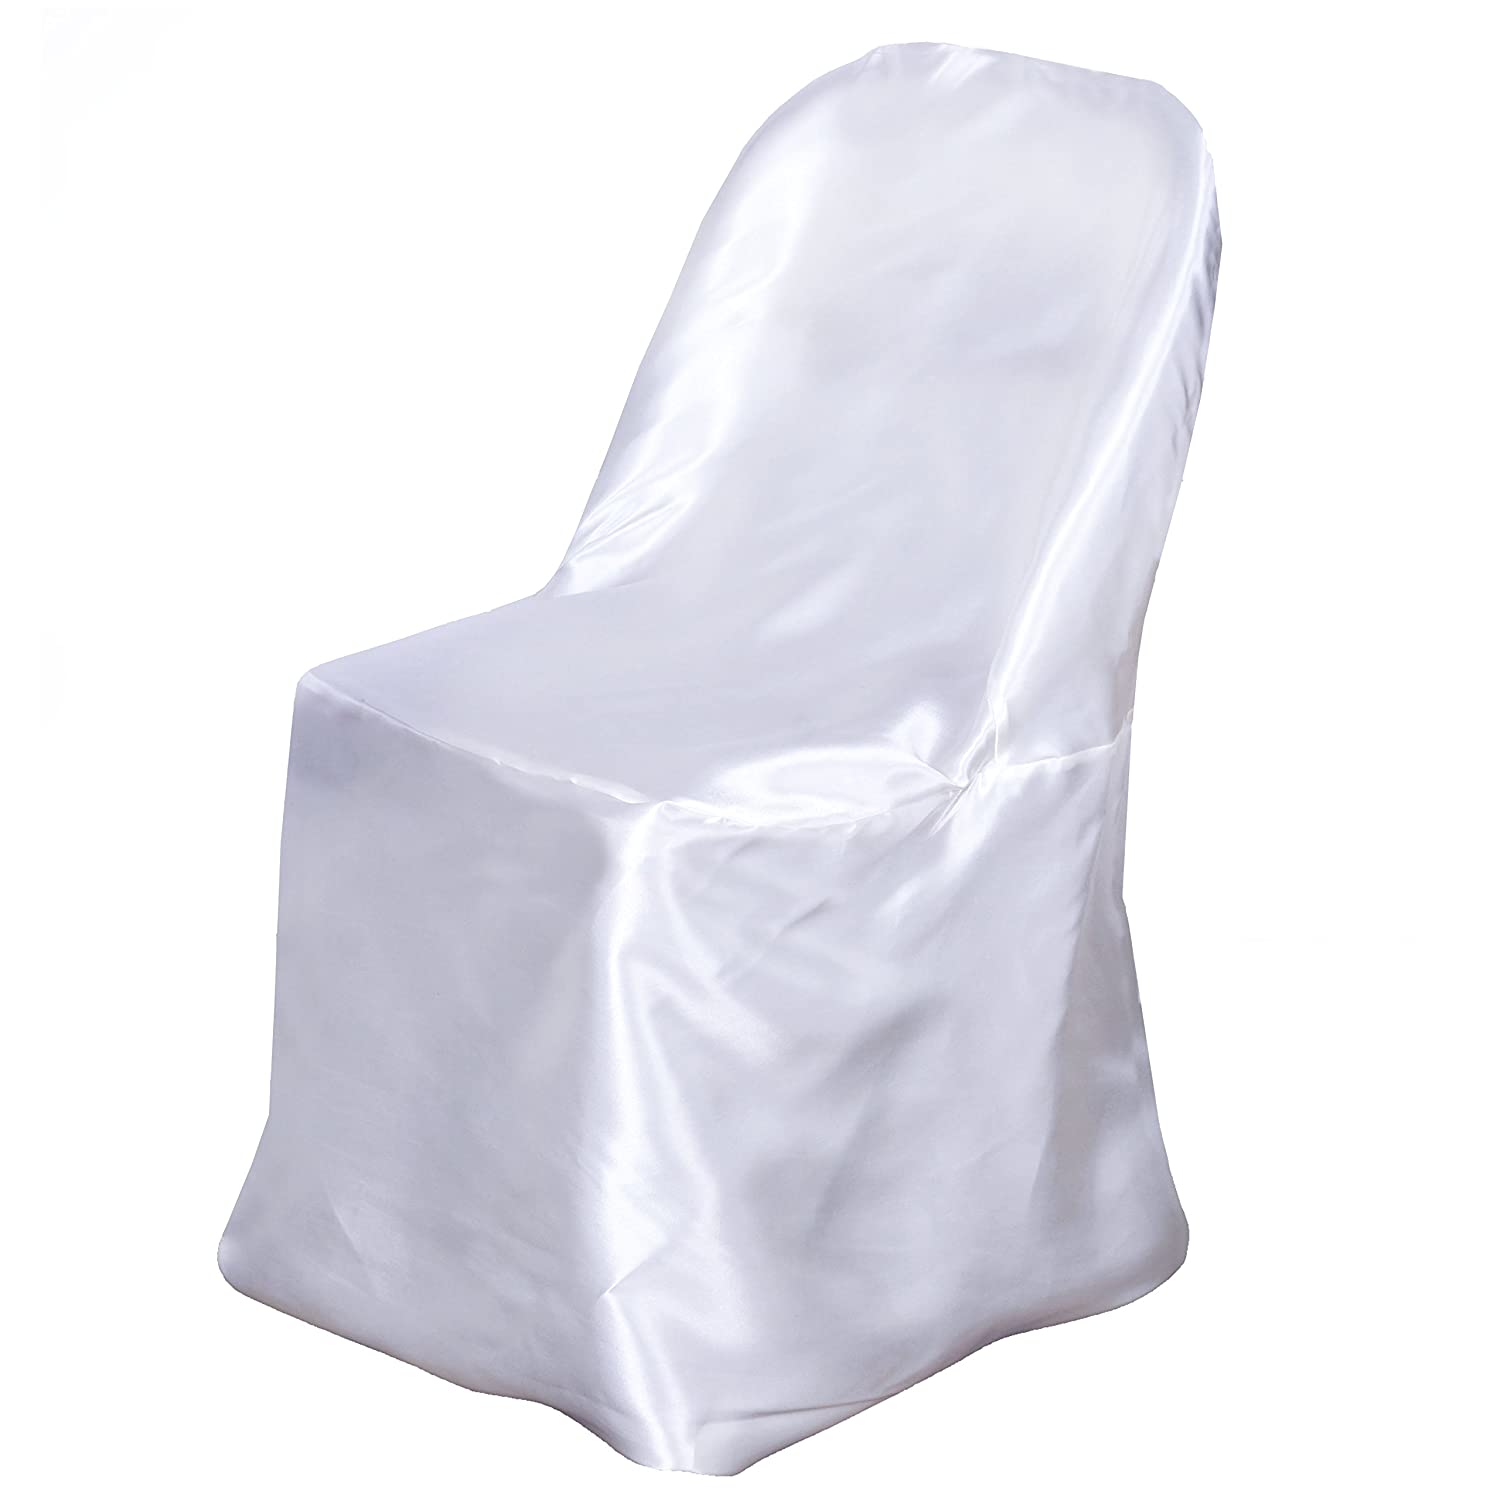 Amazon BalsaCircle 50 pcs White Satin Folding Chair Covers